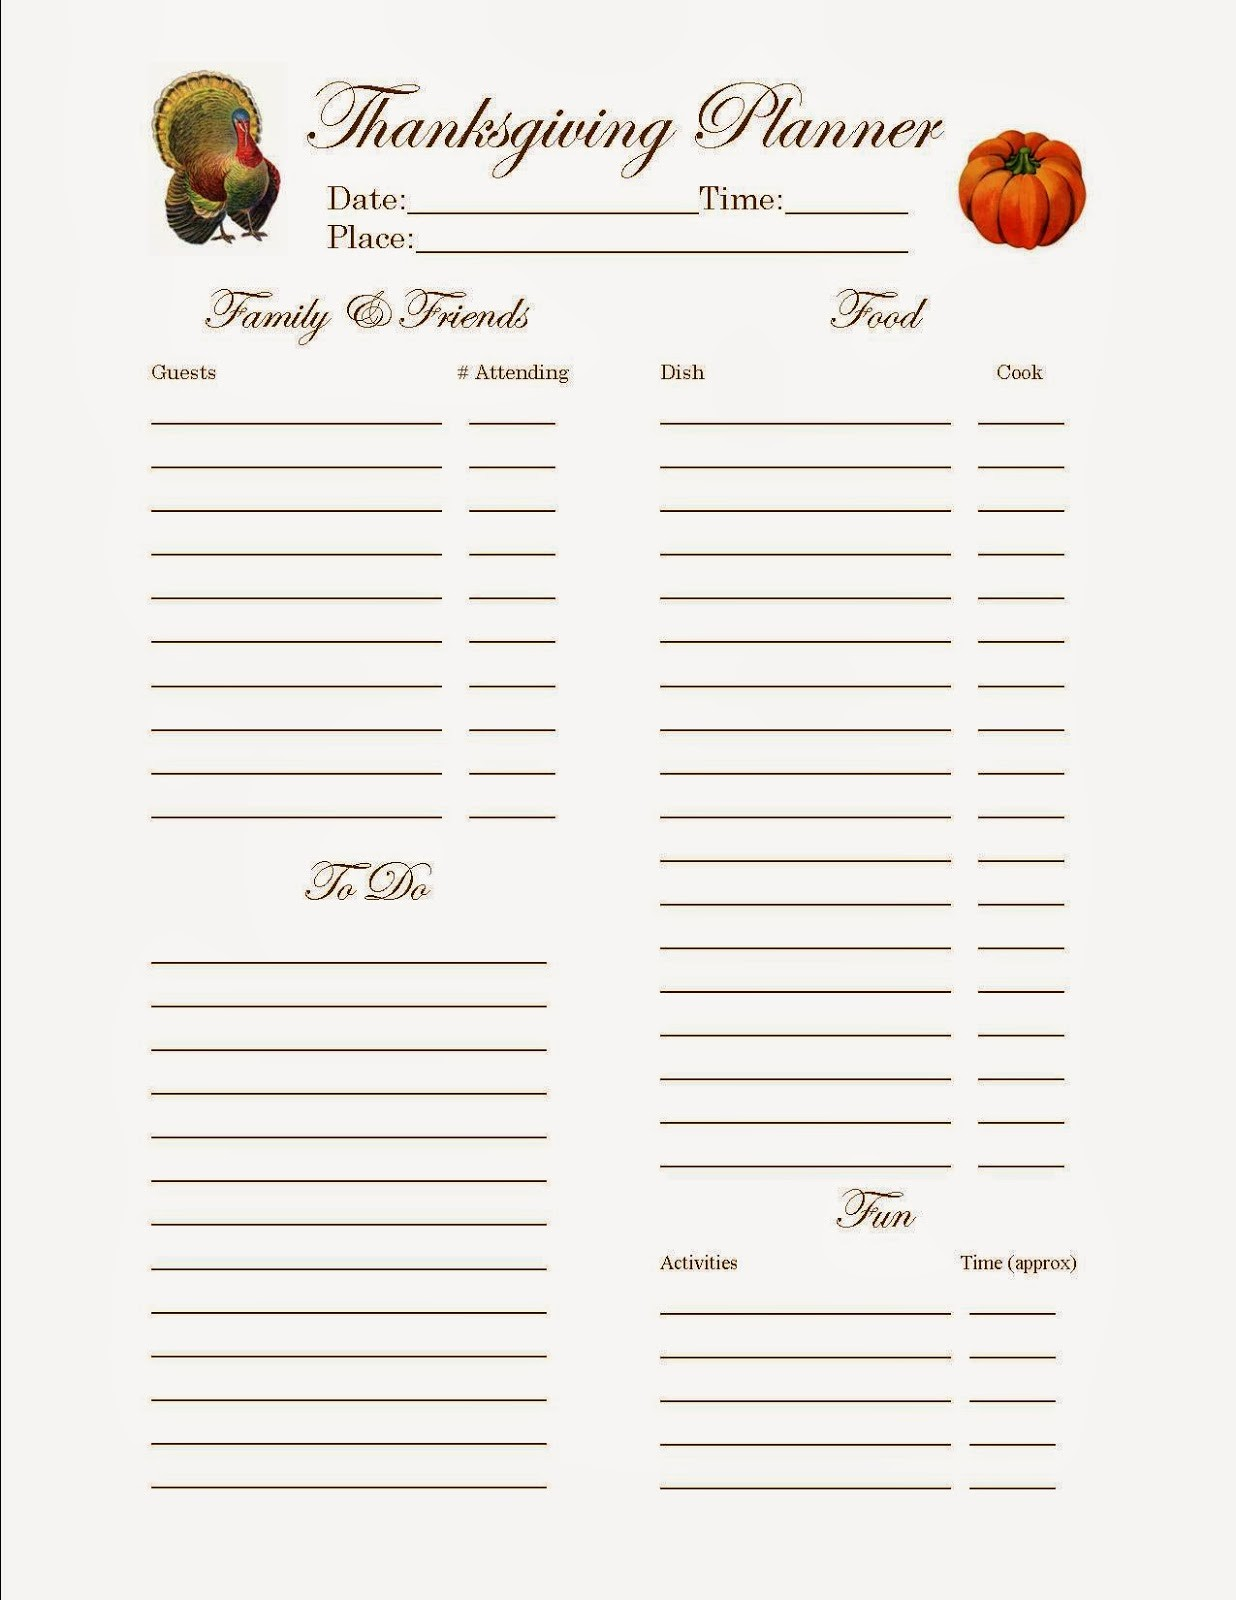 Thanksgiving Sign Up Sheet Printable Fresh Sloppy Kisses